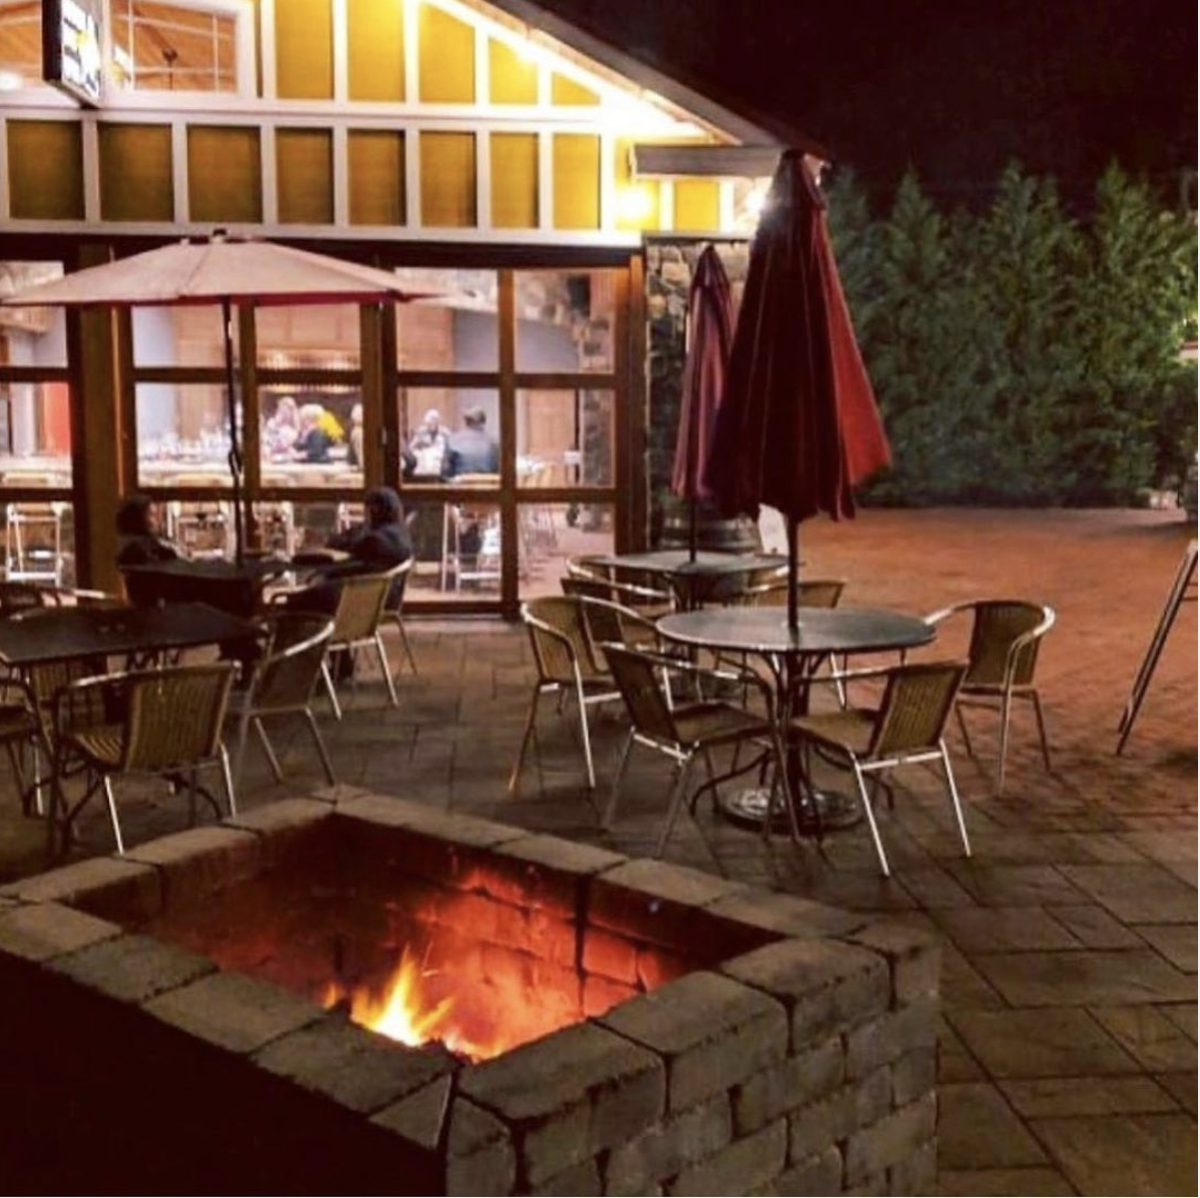 Fire Pit Saturday at Willow Creek Winery